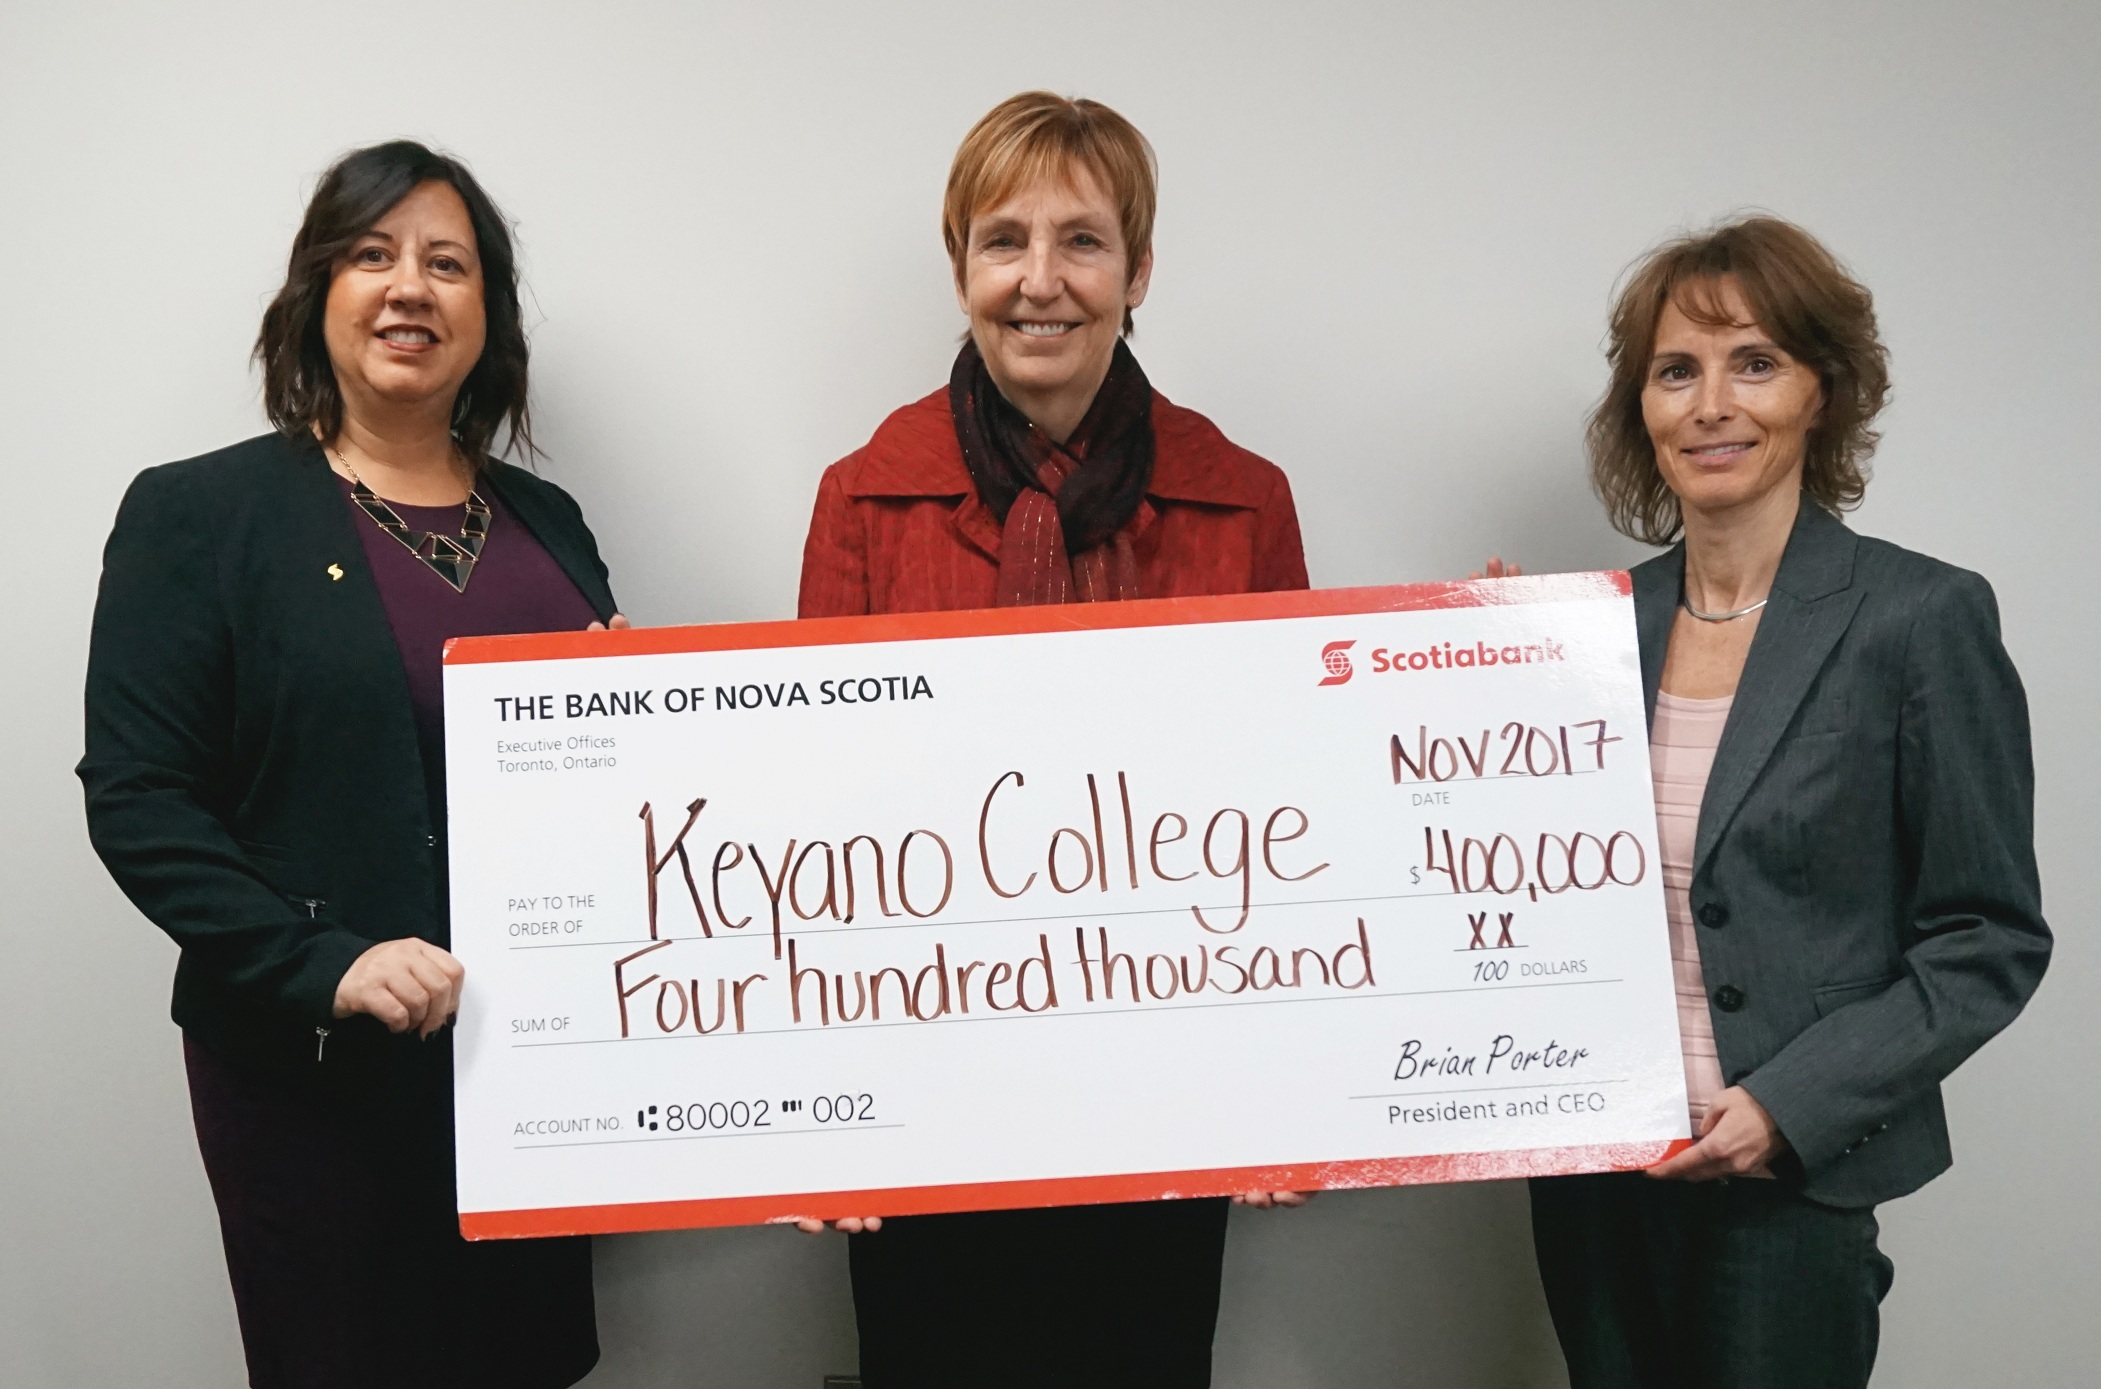 Keyano College Receiving $400K Donation from Scotiabank